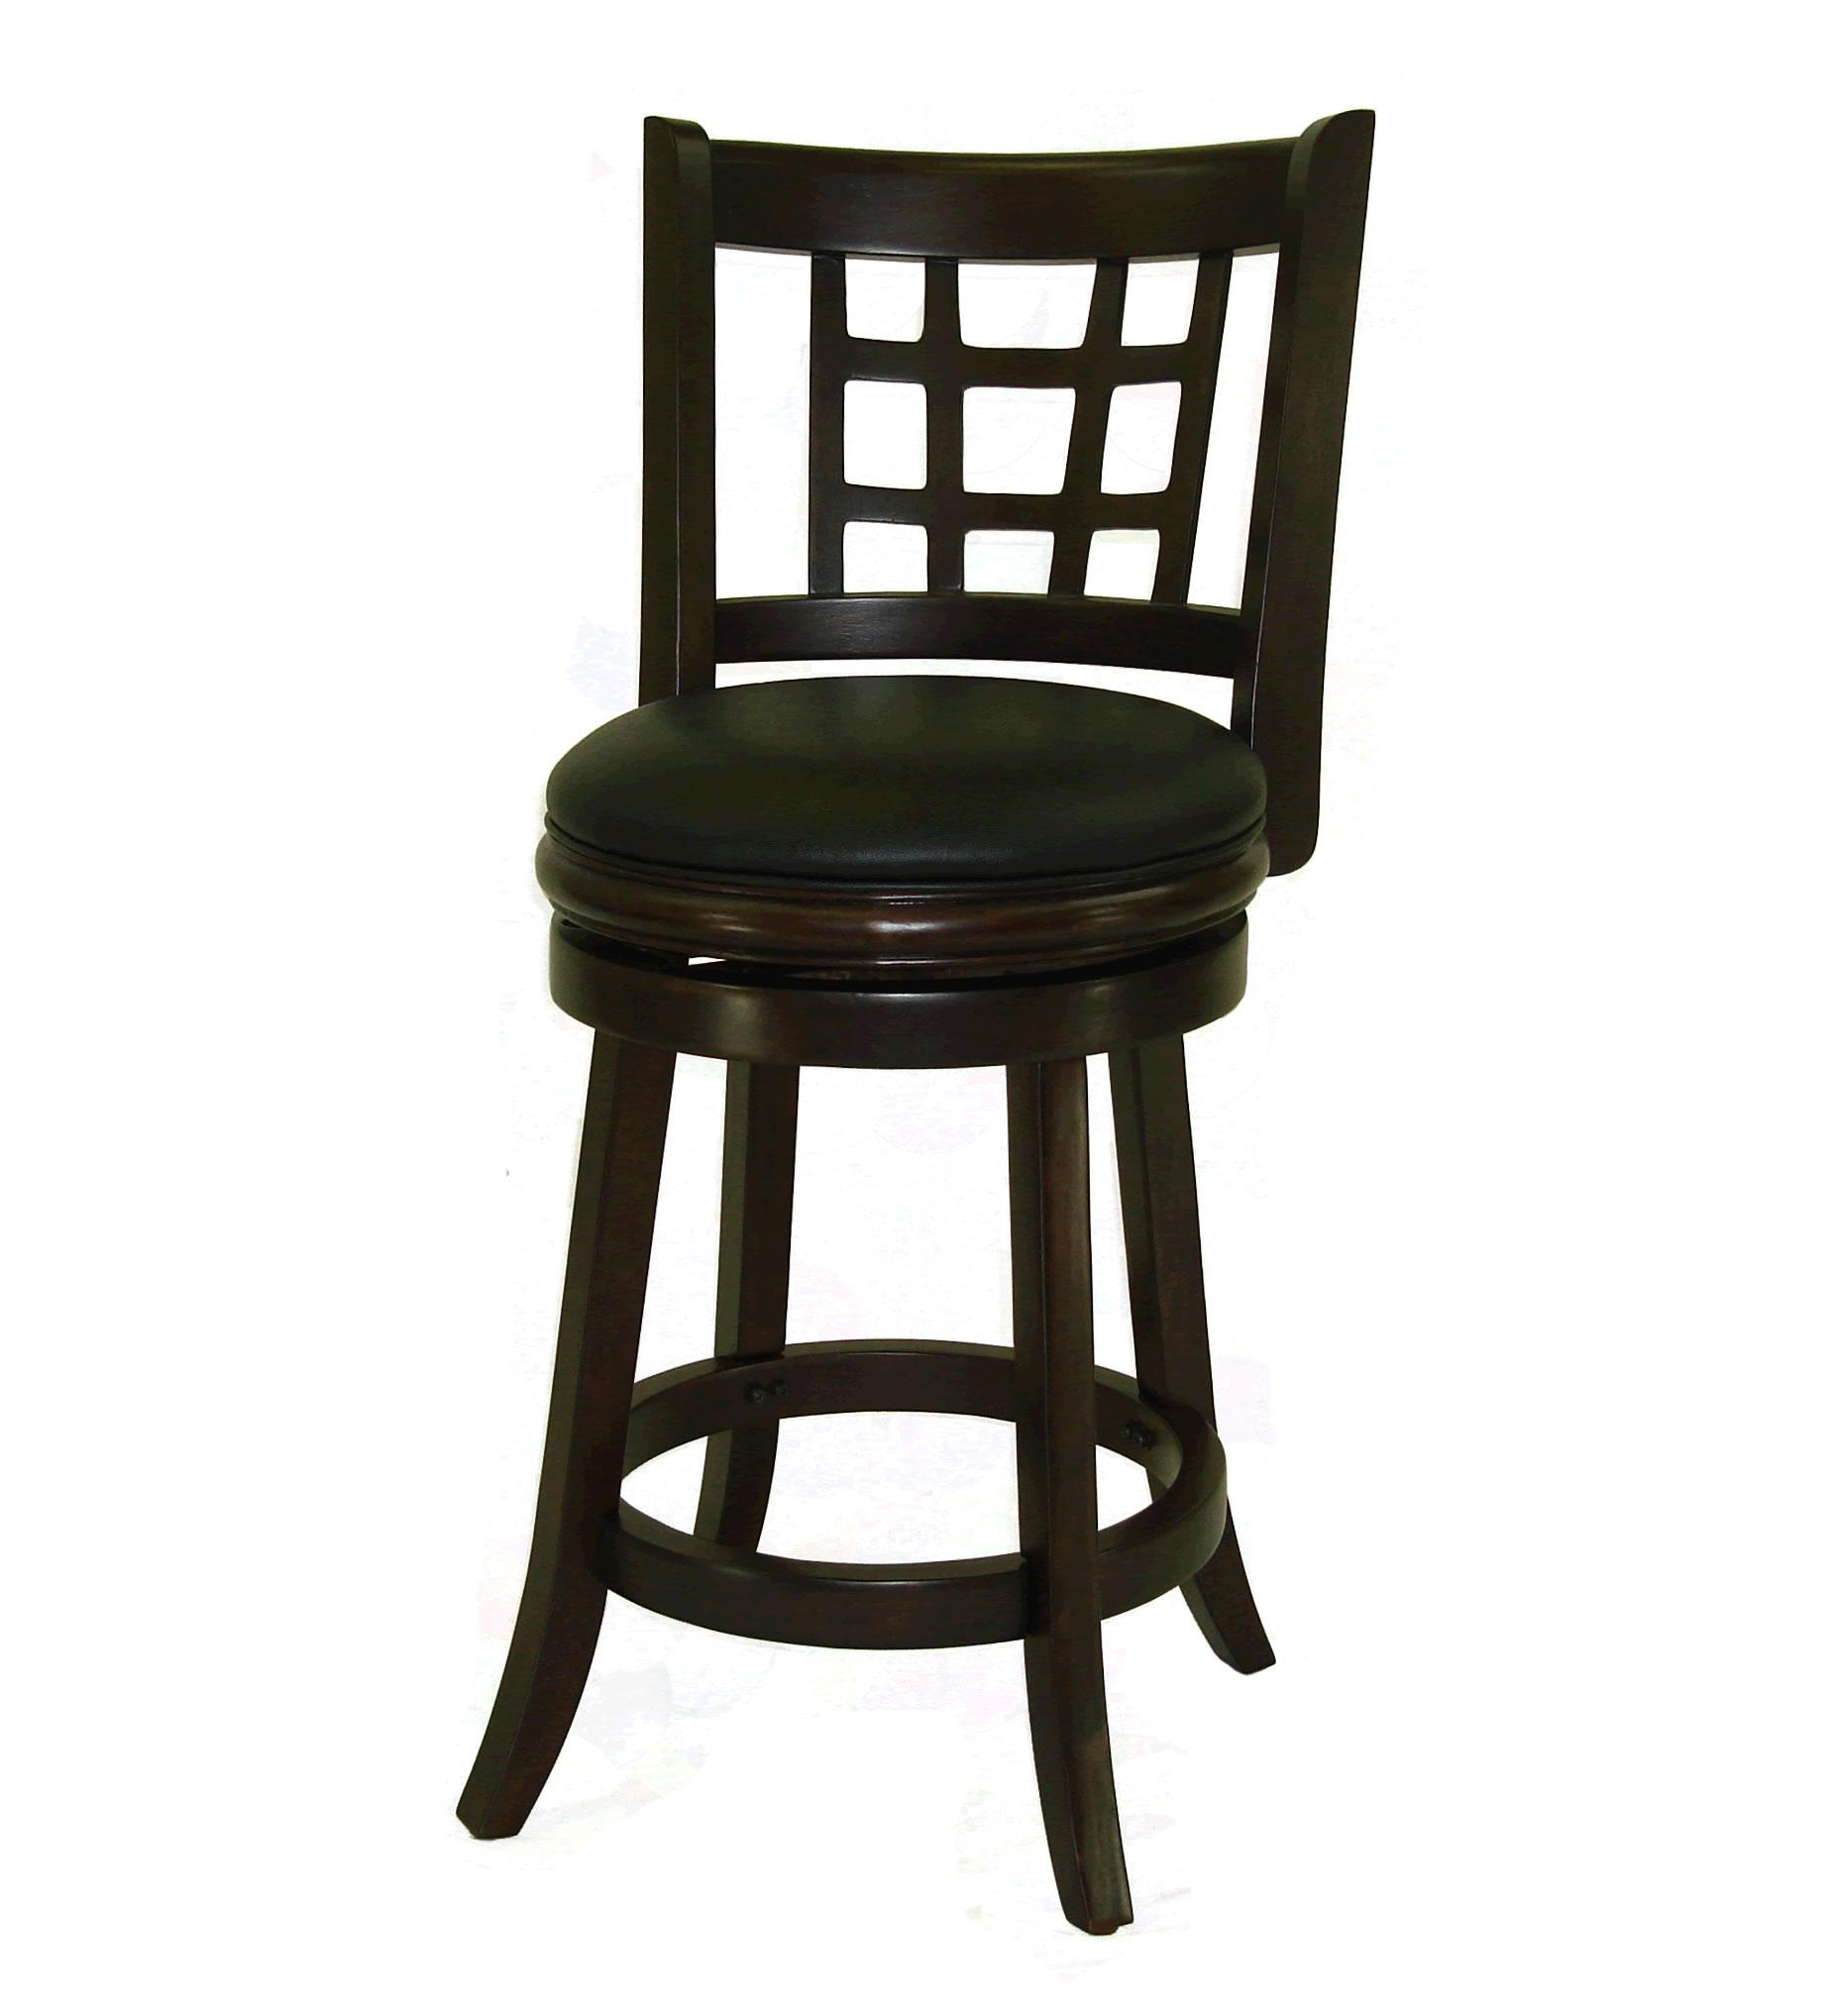 Ashley Blaire Maliha Cappuccino Counter Stool Free  : Ashley Blaire Maliha Cappuccino Counter Stool L13348007 from www.overstock.com size 1850 x 2035 jpeg 120kB